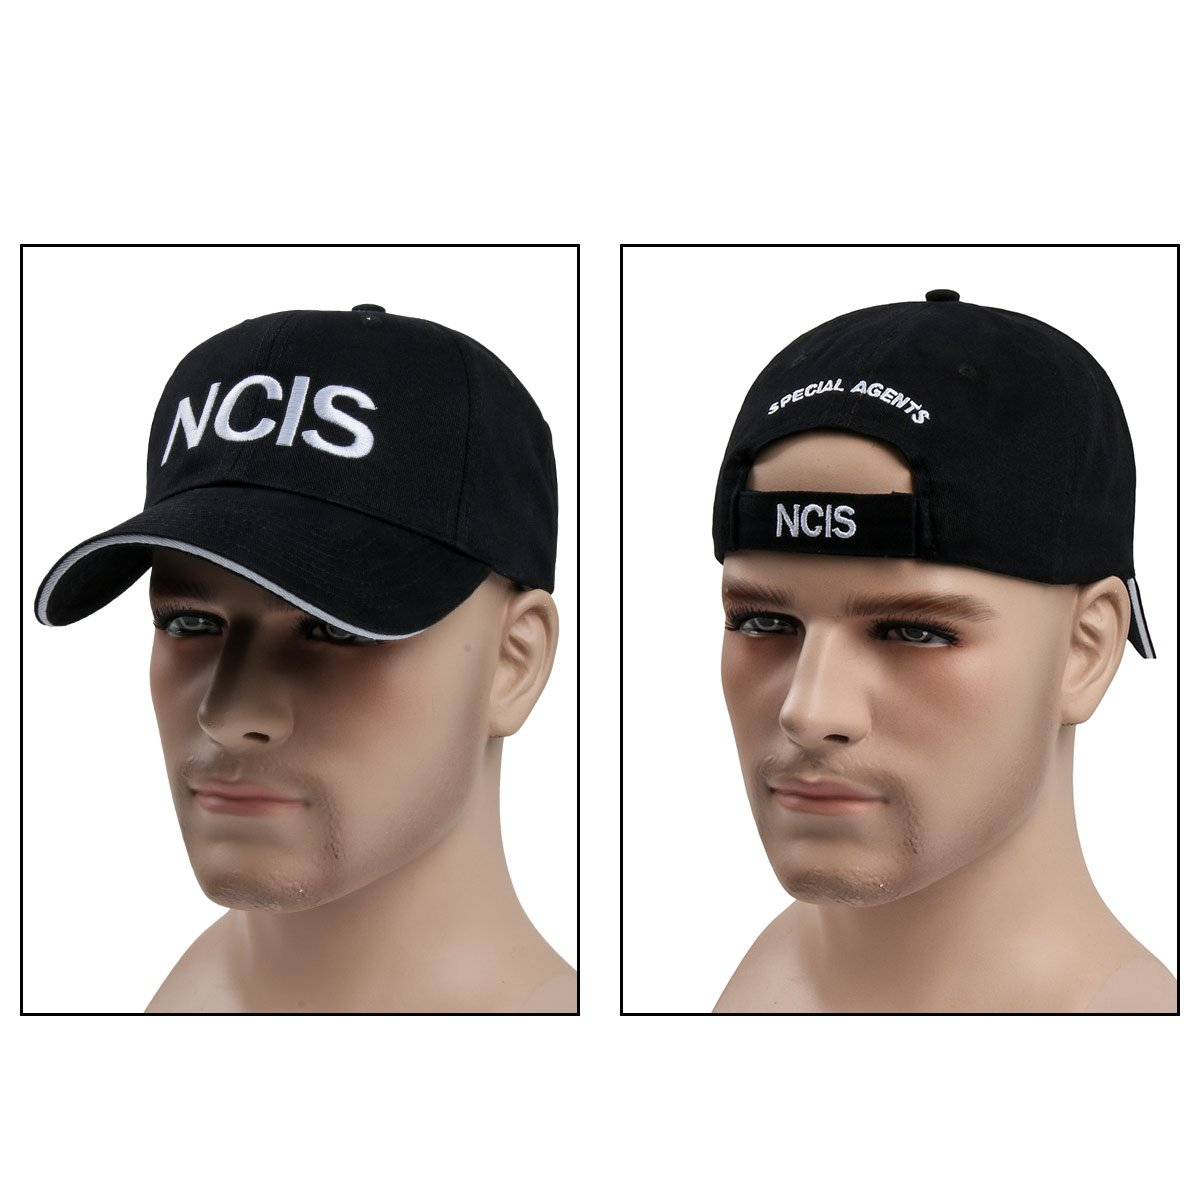 NCIS Special Agents Cap Naval Criminal Investigative Service Embroidered  Adjustable Cotton Baseball Cap Hat  ( 55ae91bc73fc